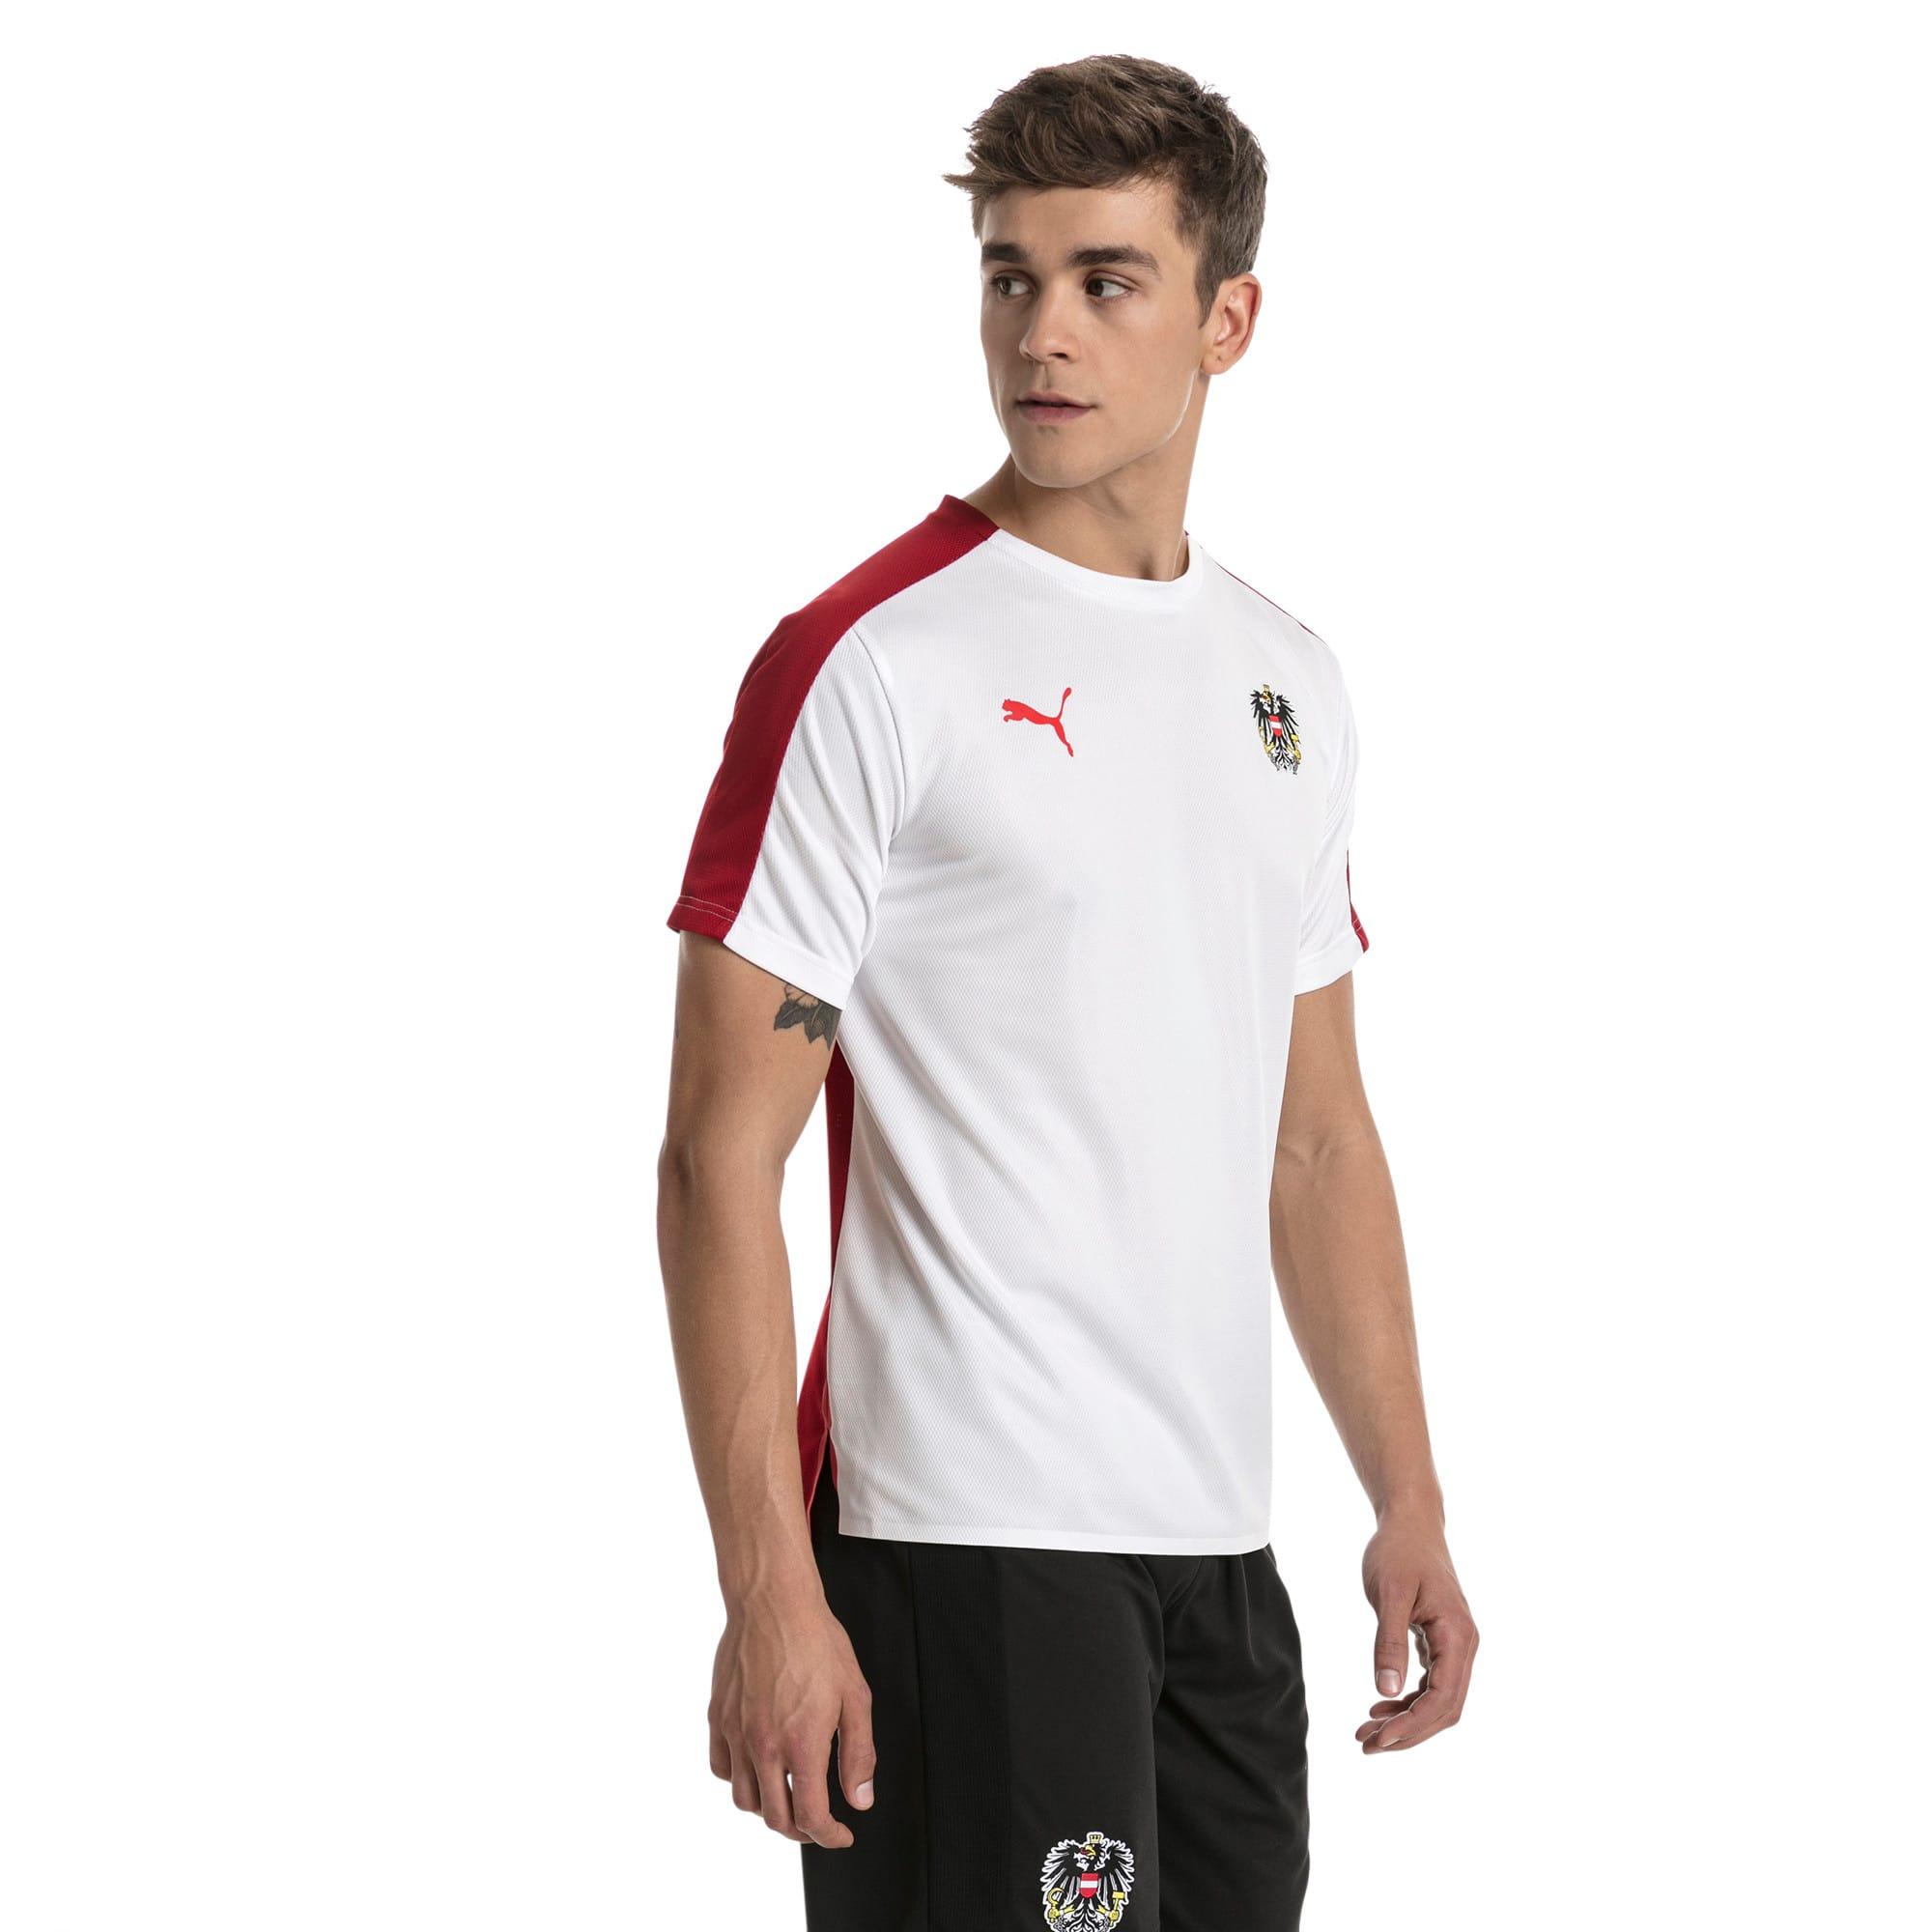 Thumbnail 2 of Austria Men's Stadium Jersey, Puma White-Red Dahlia, medium